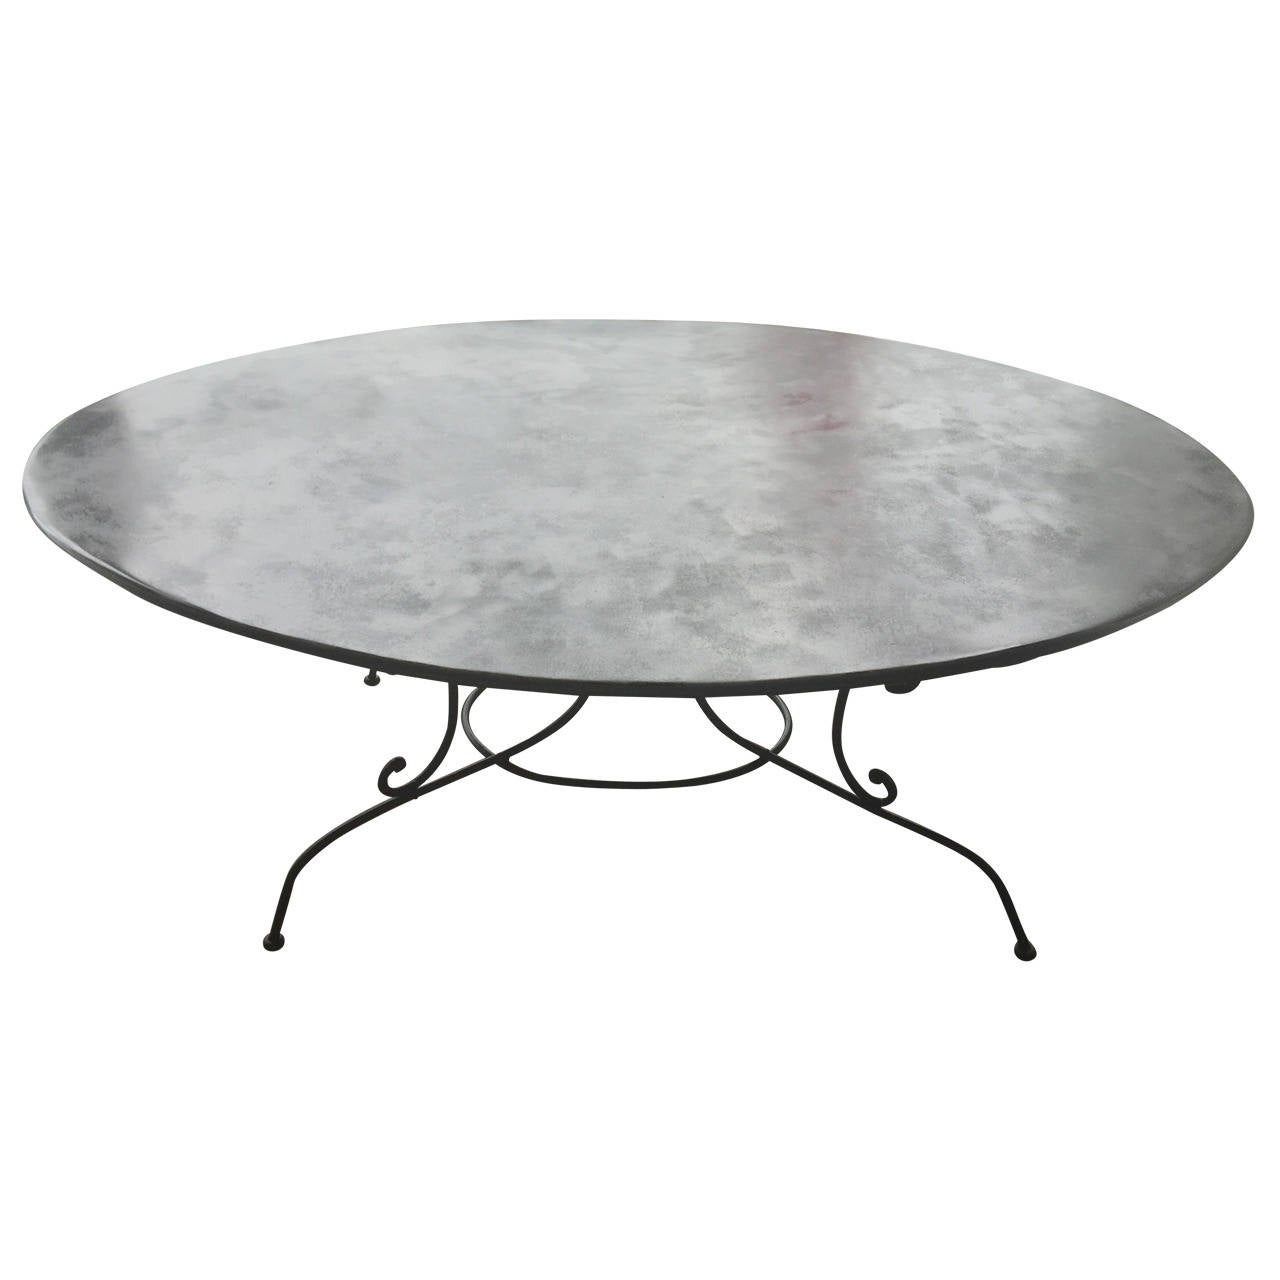 Large Oval French Wrought Iron Dining Table At 1stdibs